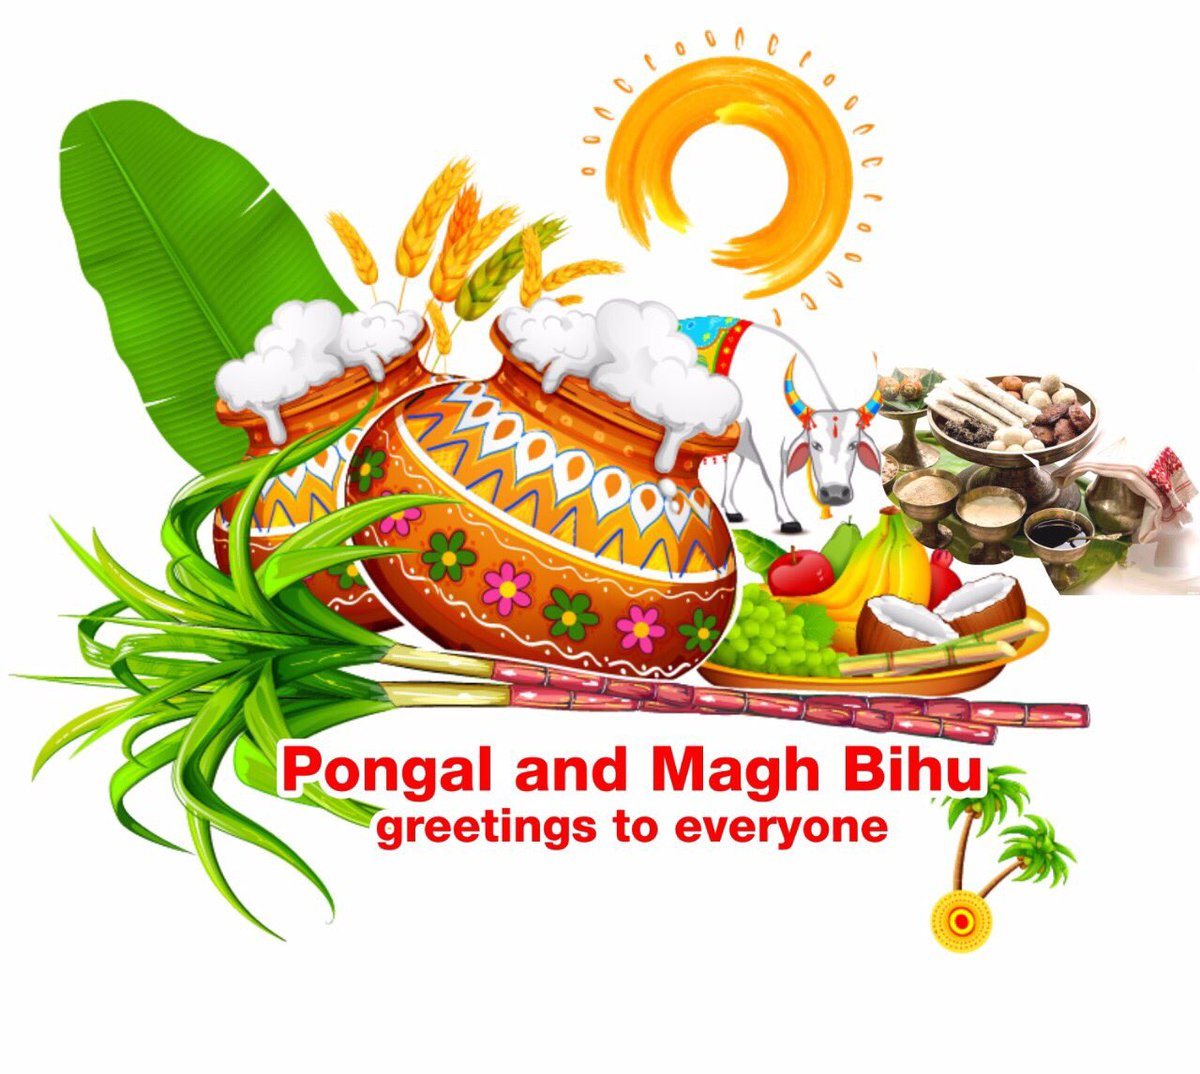 Smriti Z Irani On Twitter Pongal And Magh Bihu Greetings May The